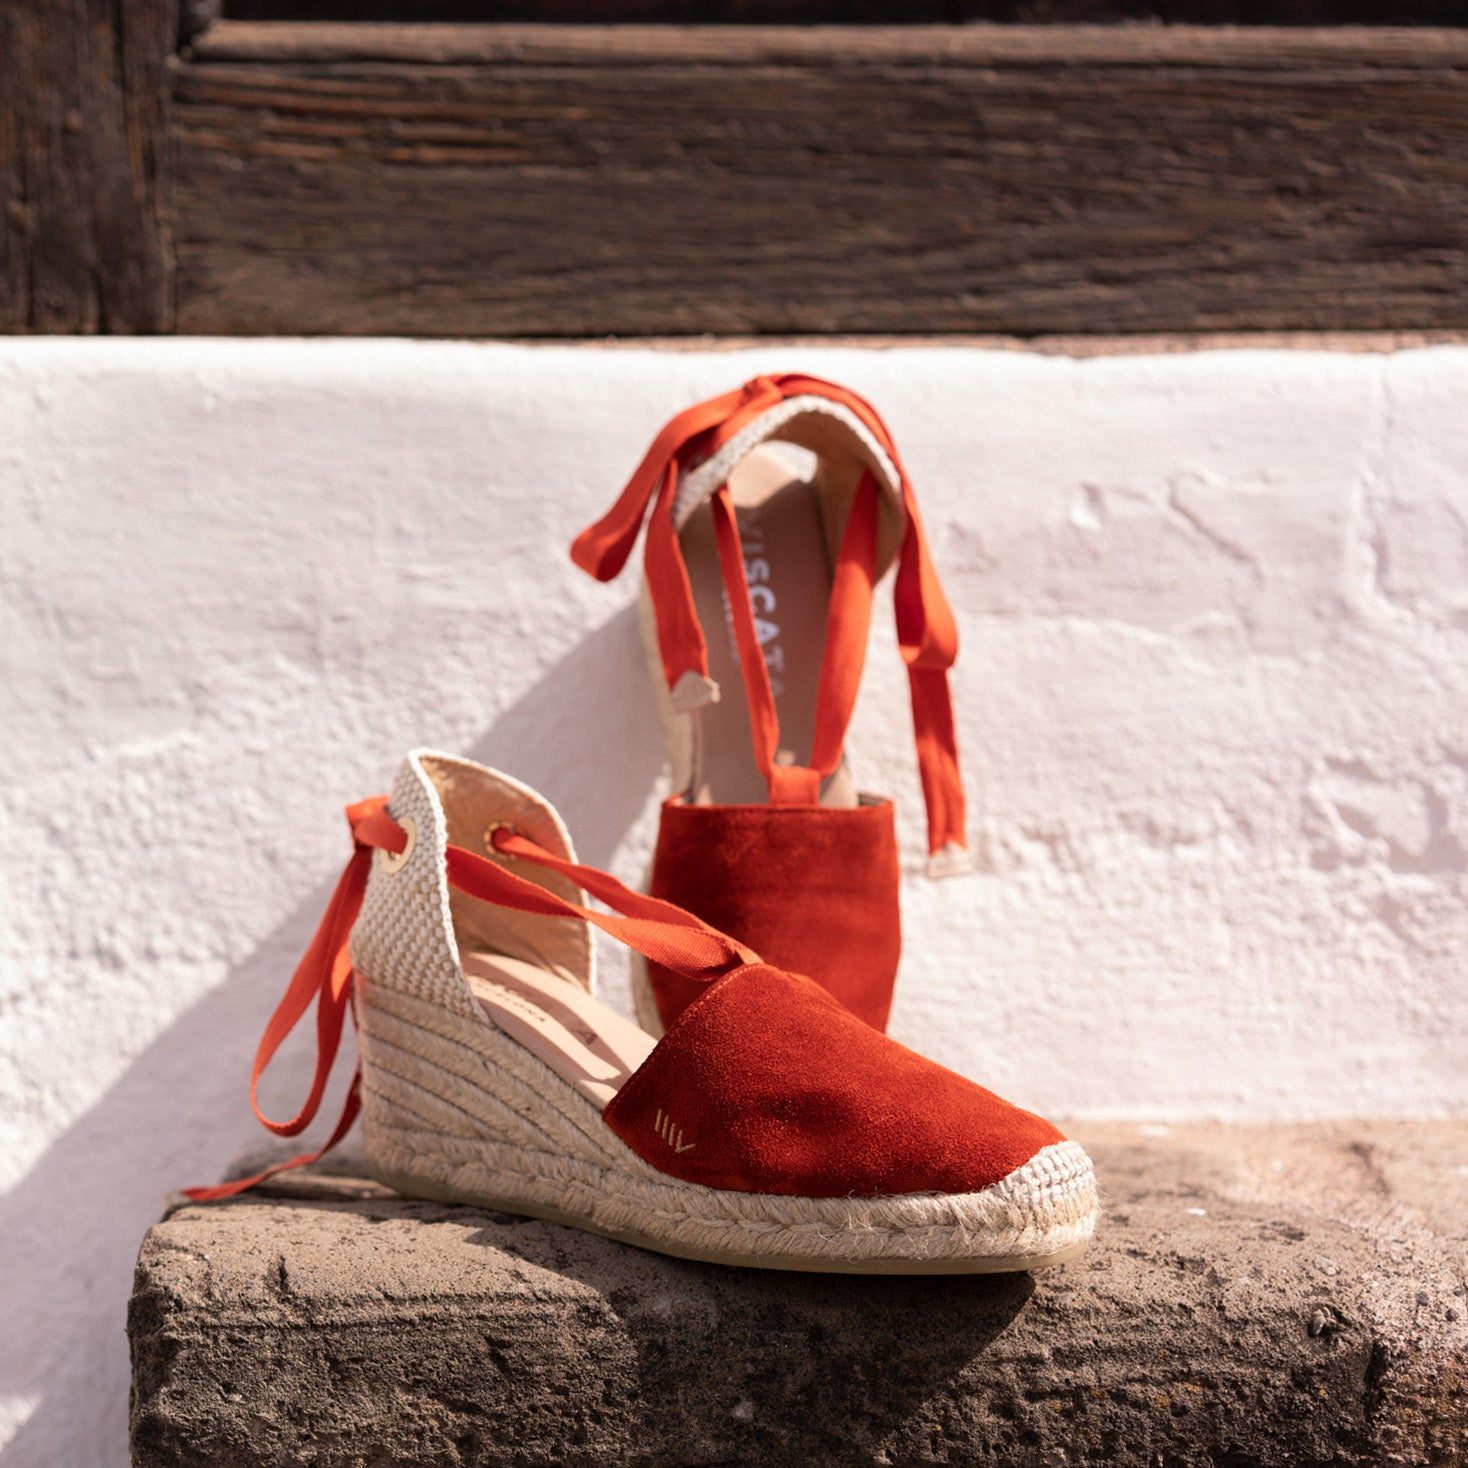 https://www.viscata.com/collections/all-products/products/fosca-suede-wedges-tangerine